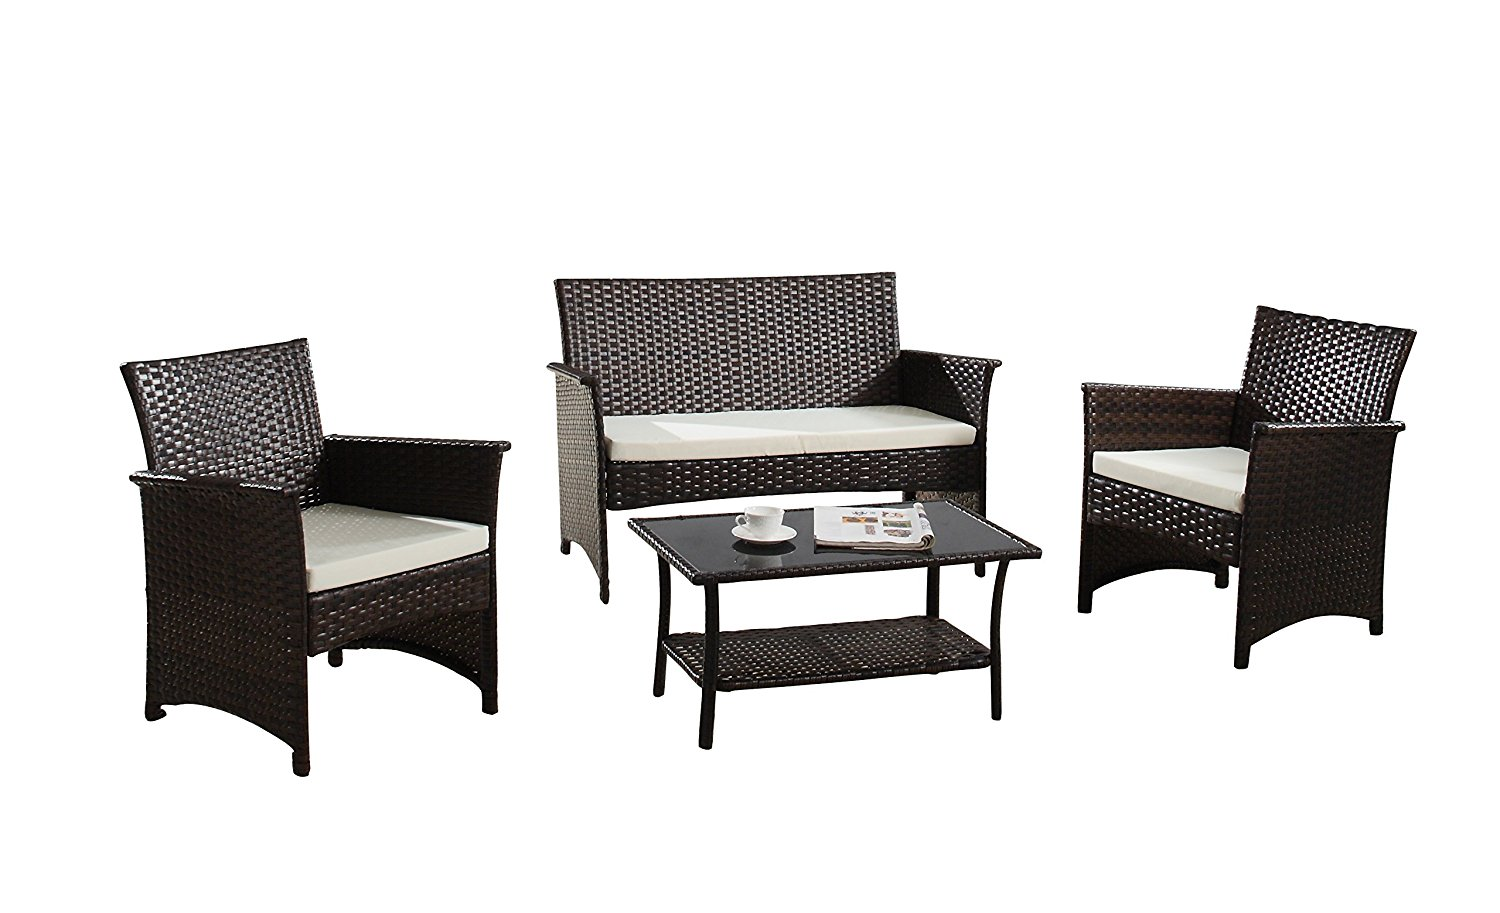 Modern Outdoor Garden, Patio 4 Piece Seat - Gray, Espresso Wicker Sofa Furniture Set (Espresso)